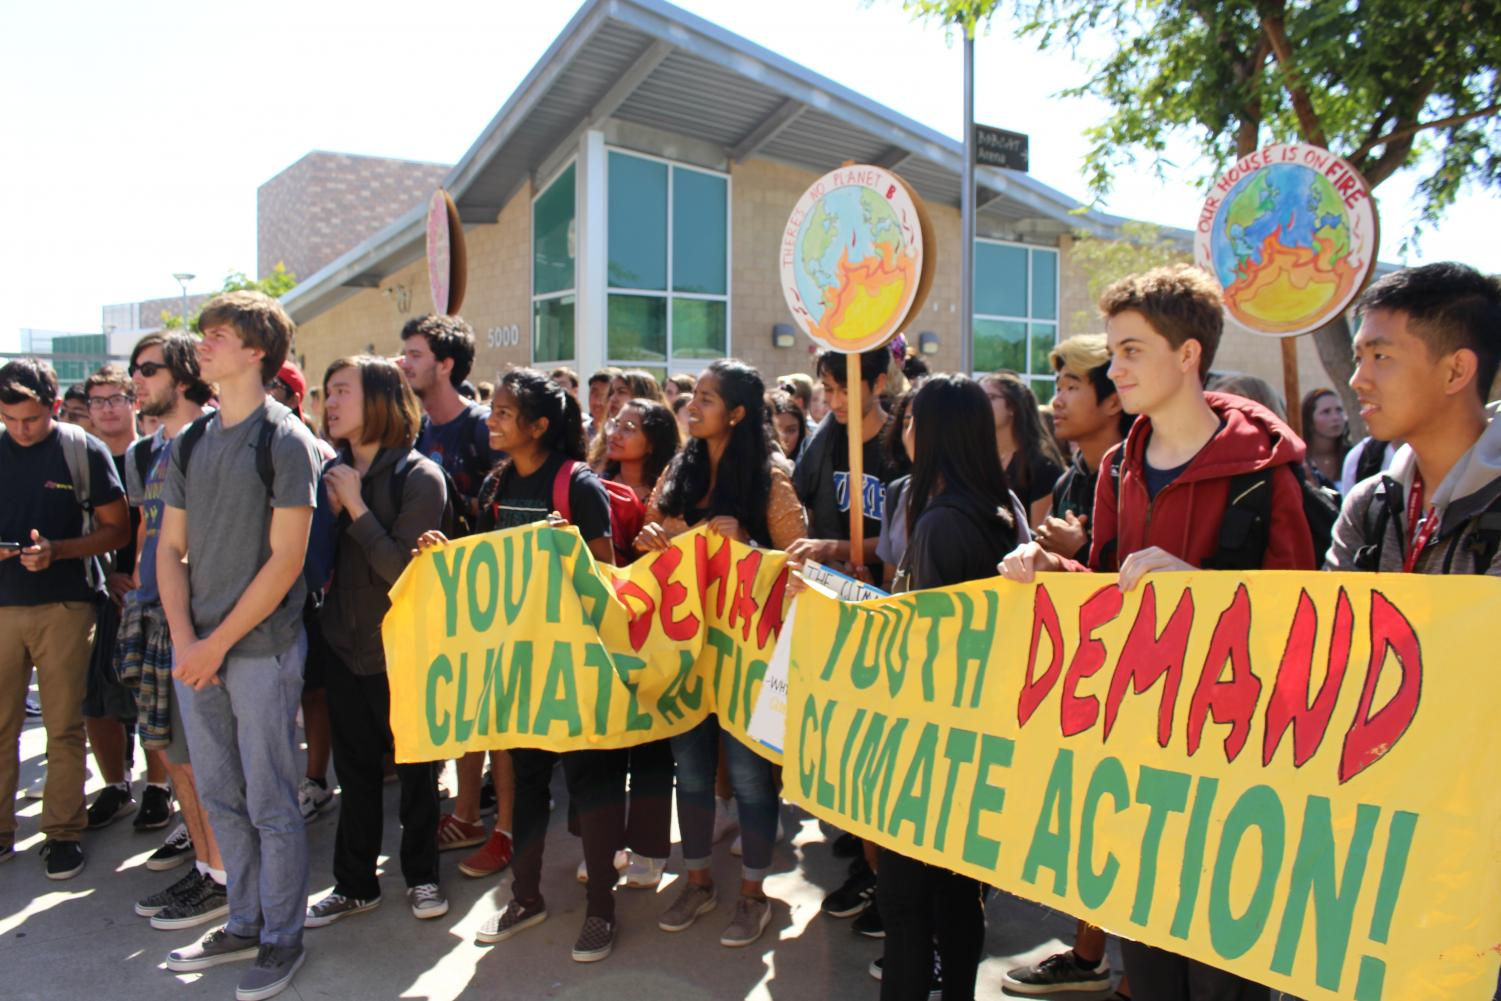 Students+gather+in+the+Academic+Mall+at+2%3A20+p.m.+on+Friday%2C+Sept.+20+to+give+awareness+to+climate+change.+This+walkout+was+global%3B+youth+and+adults+alike+walked+for+the+same+march+against+climate+change.+